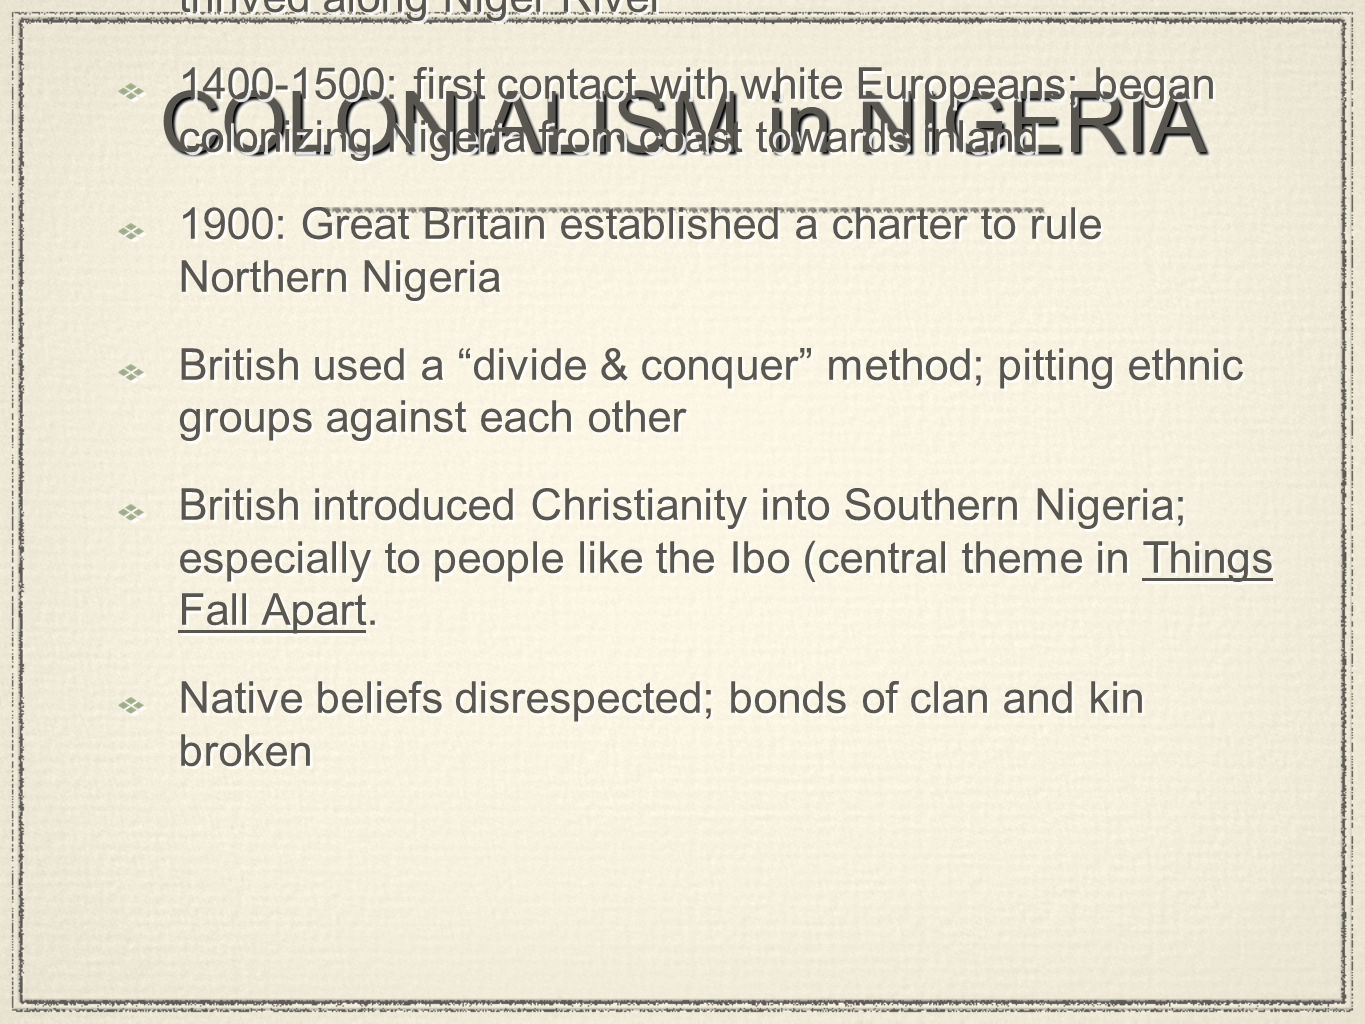 1100 - 1400: major African civilizations and tribes thrived along Niger River 1400-1500: first contact with white Europeans; began colonizing Nigeria from coast towards inland 1900: Great Britain established a charter to rule Northern Nigeria British used a divide & conquer method; pitting ethnic groups against each other British introduced Christianity into Southern Nigeria; especially to people like the Ibo (central theme in Things Fall Apart.